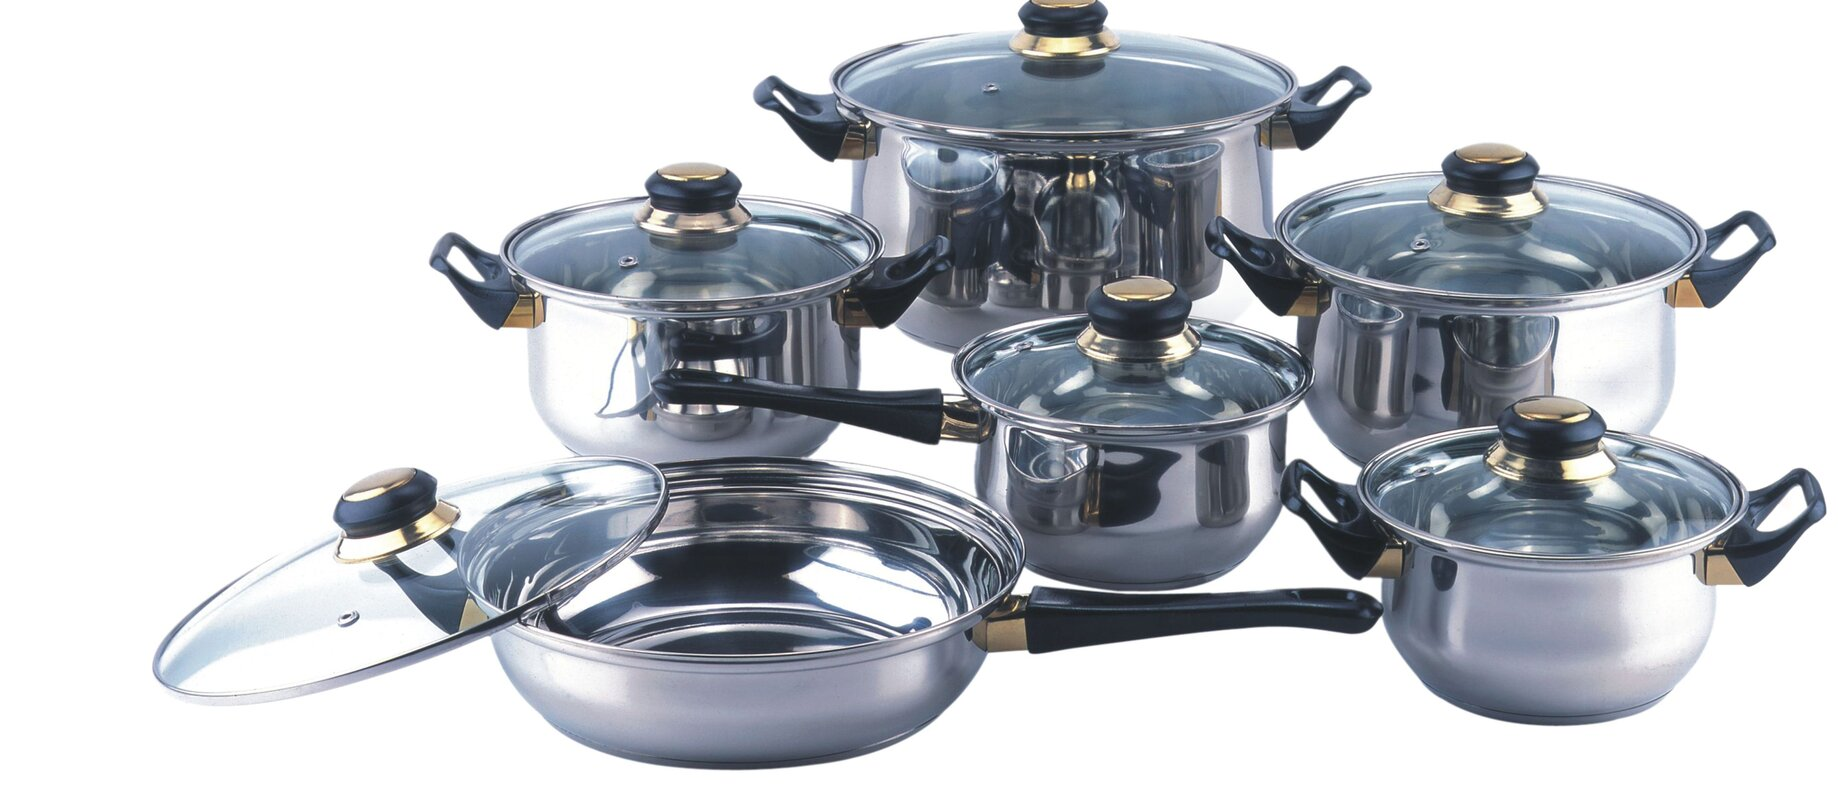 Gourmet Chef Gourmet Chef 12 Stainless Steel Piece Cookware Set ...